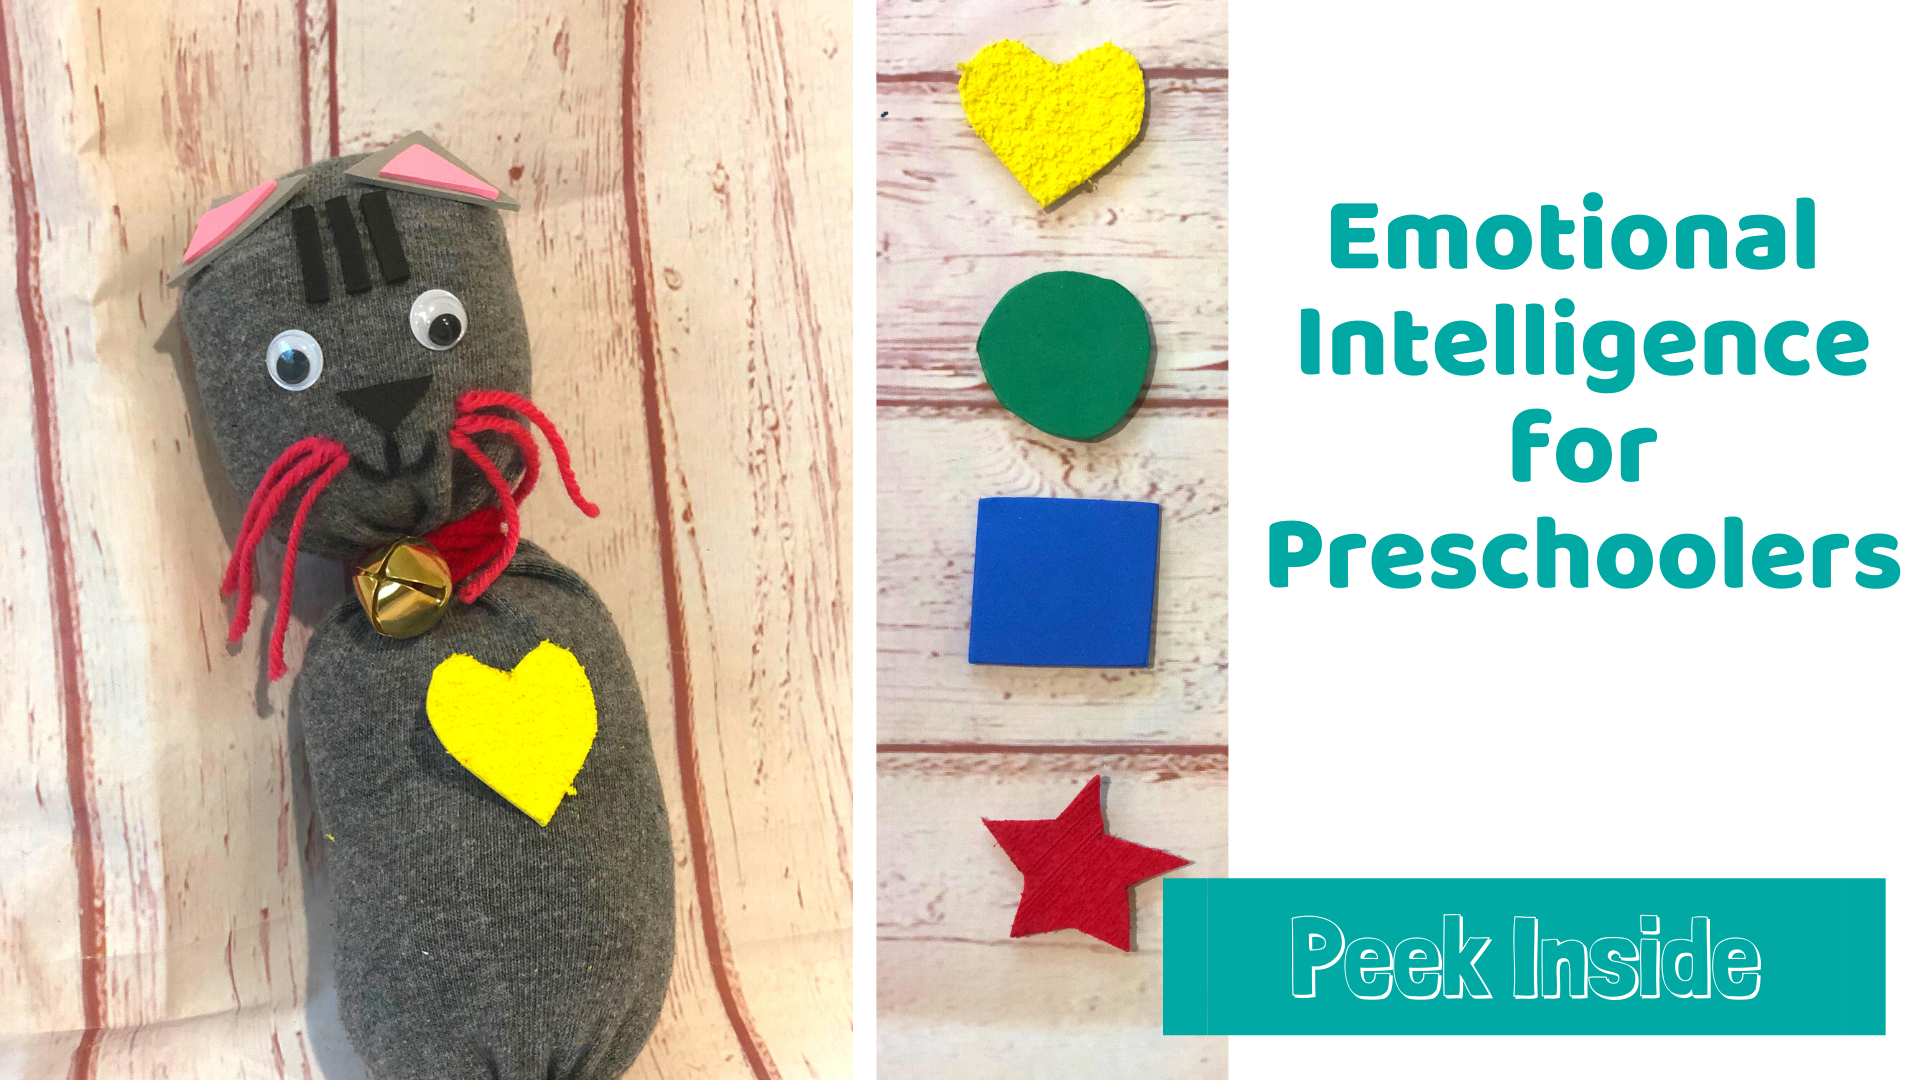 Emotional Intelligence for preschoolers